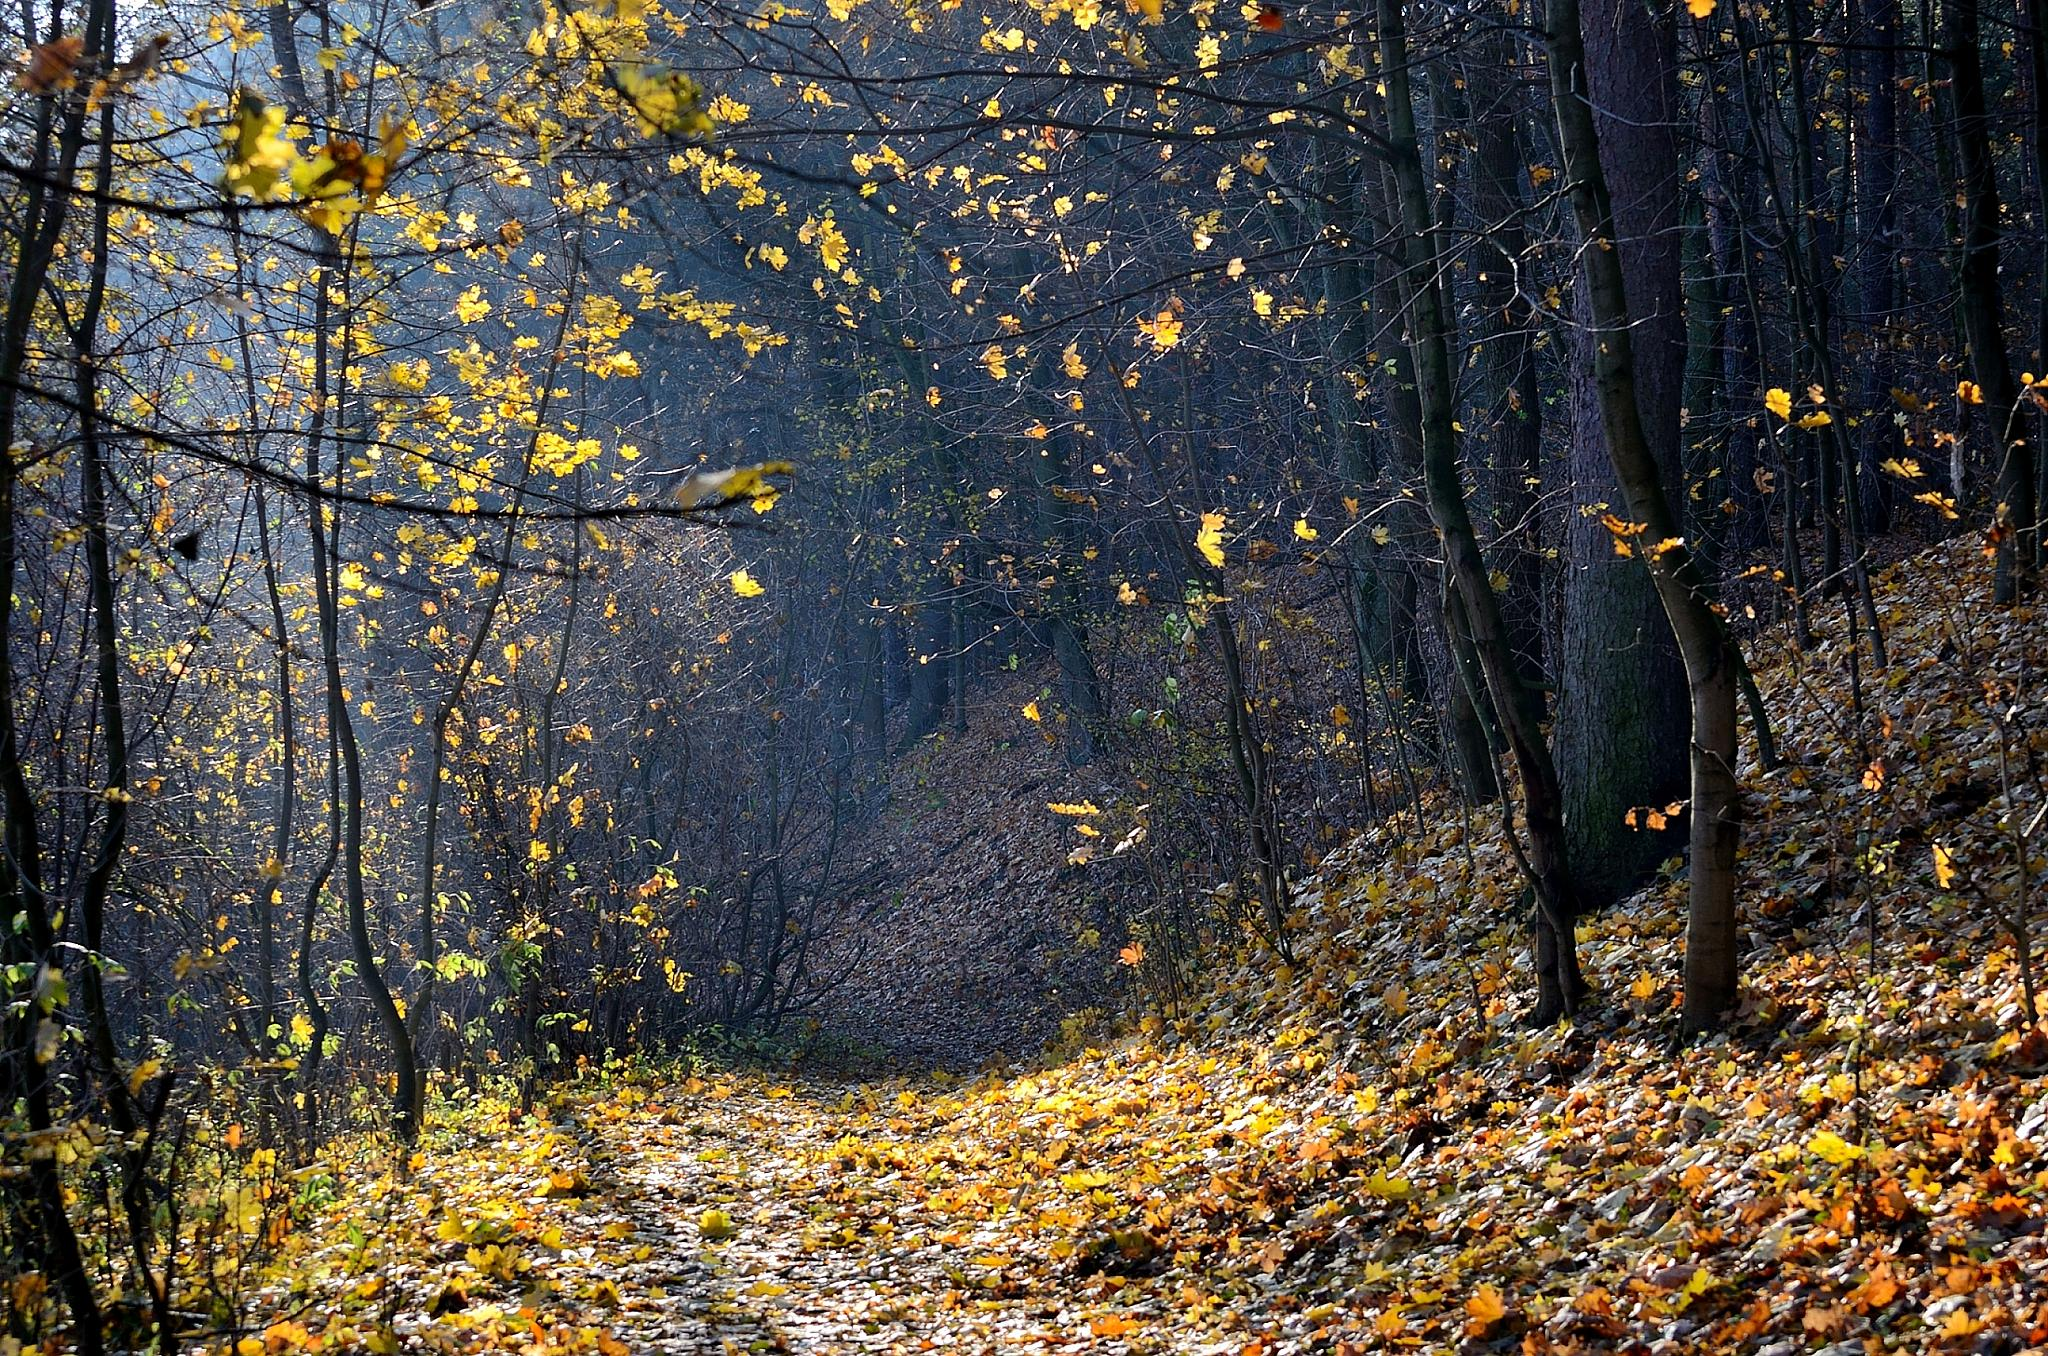 Autumn in the forest by habibi27